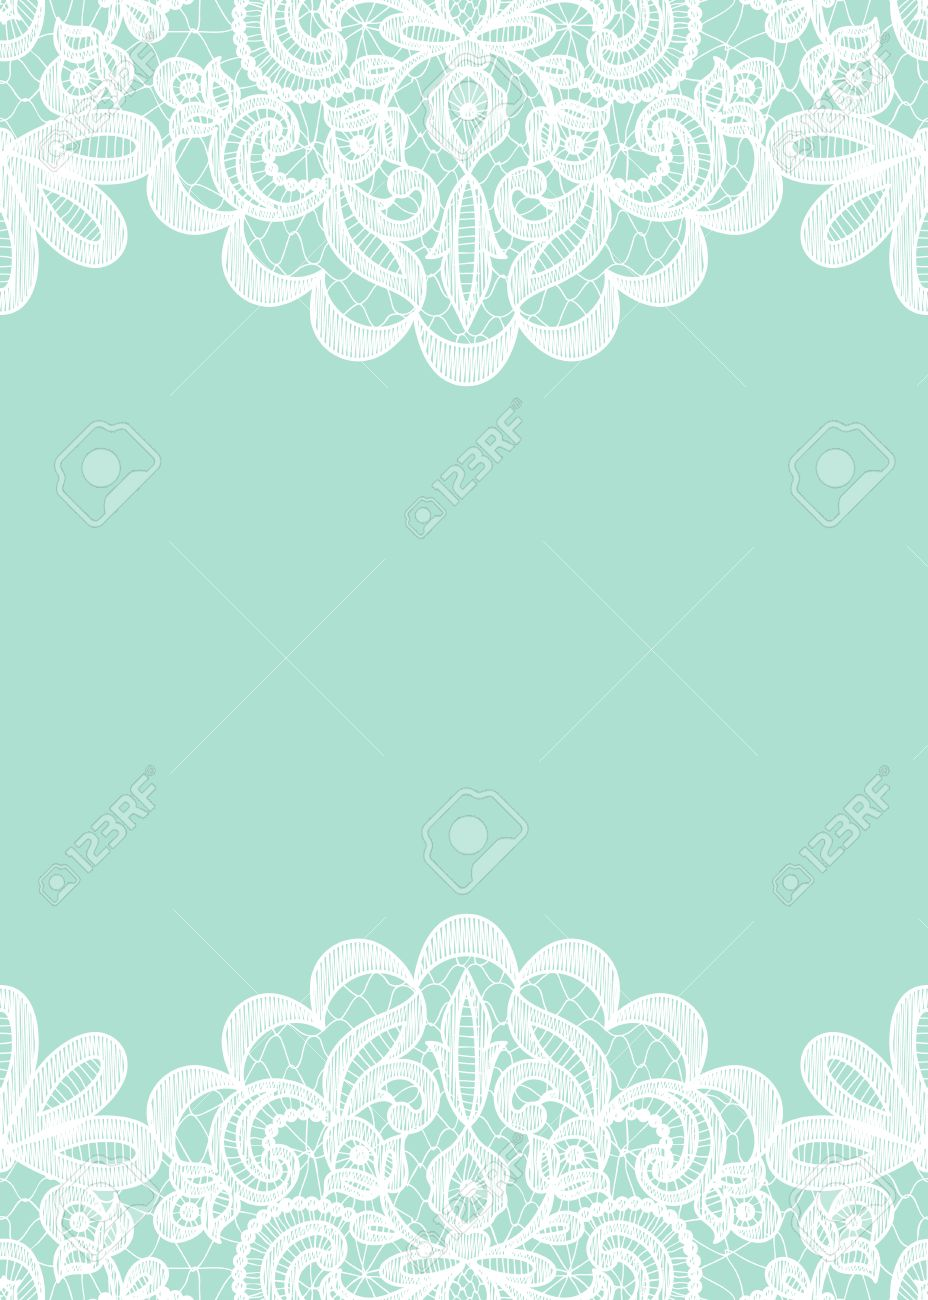 Wedding Invitation Or Greeting Card With Lace Border Isolated